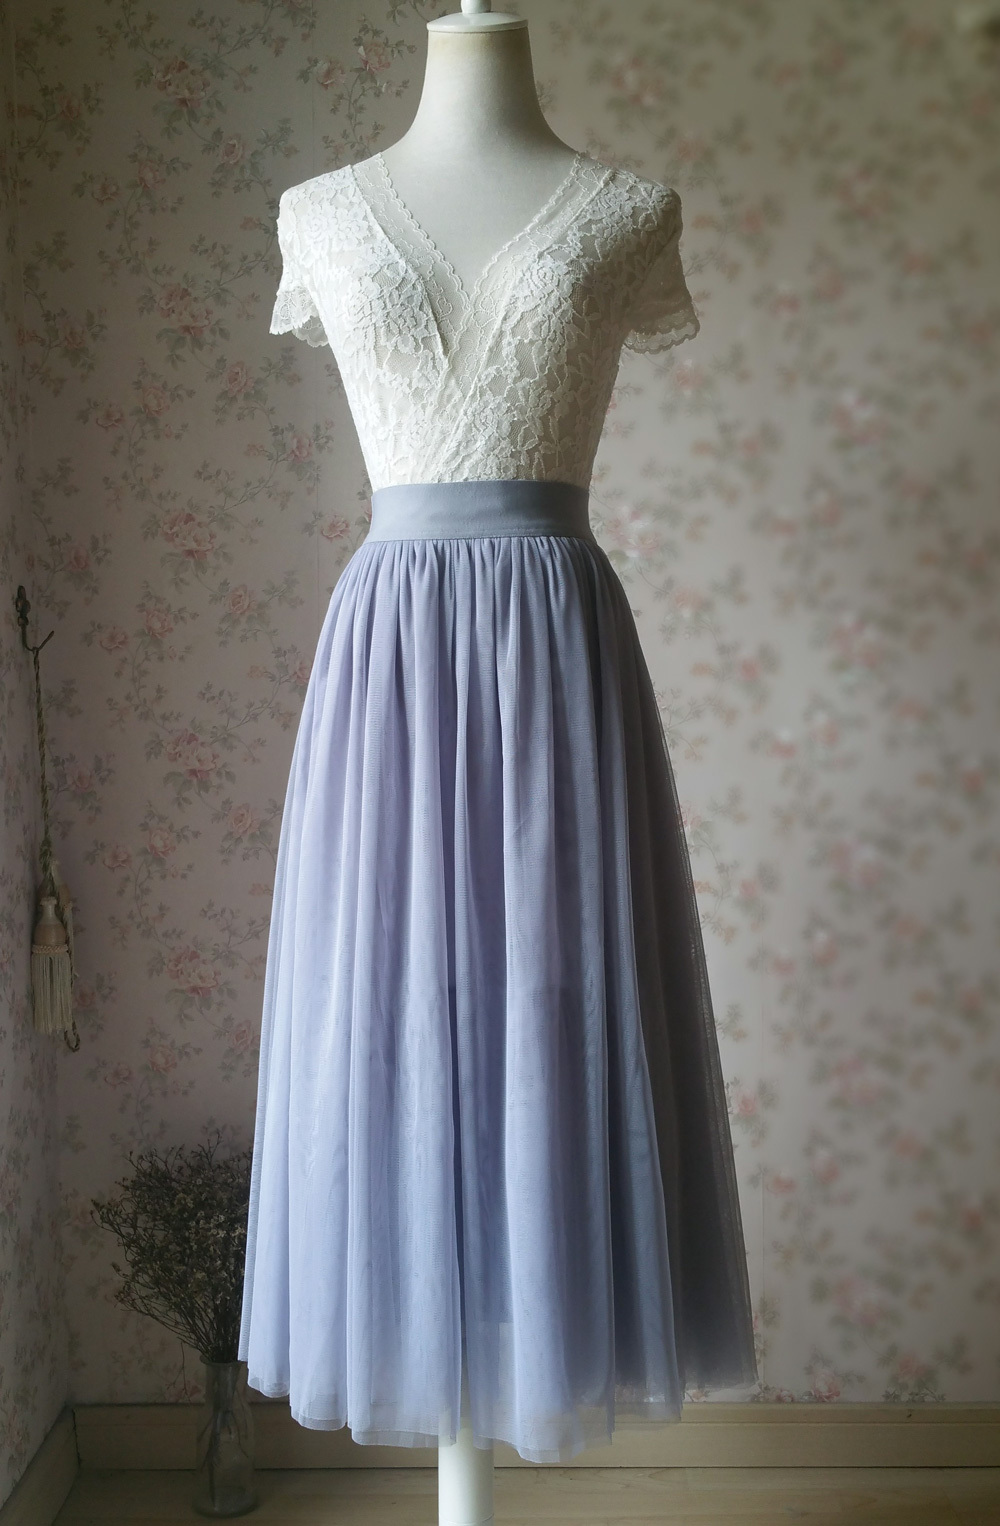 LIGHT GRAY Midi Length Tulle Skirt Tulle Midi Skirt Plus Size Gray Party Skirts